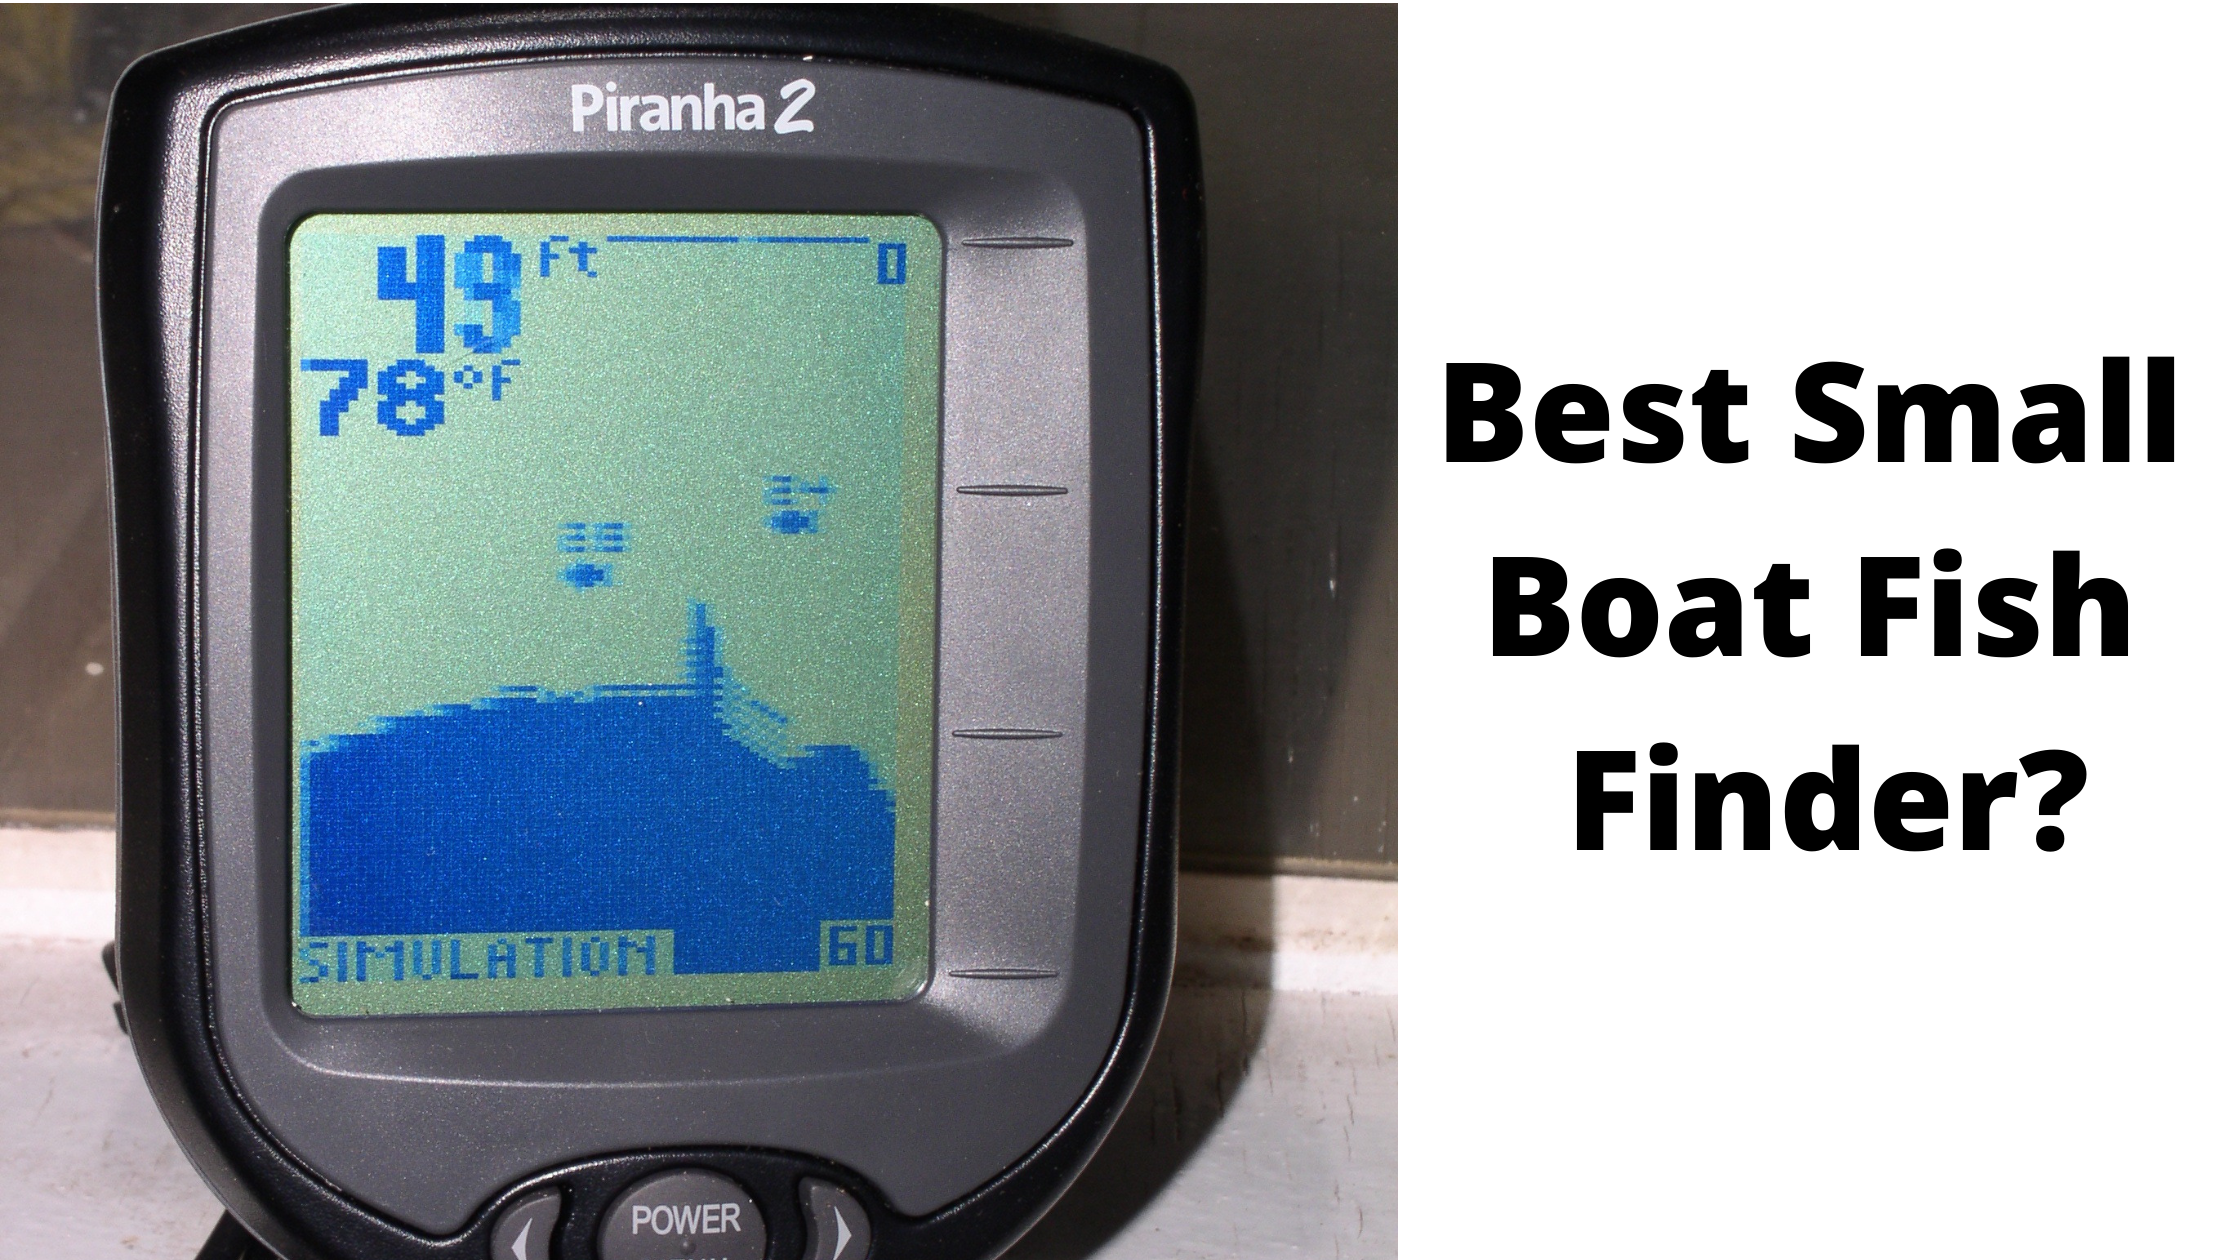 Best Small Boat Fish Finder